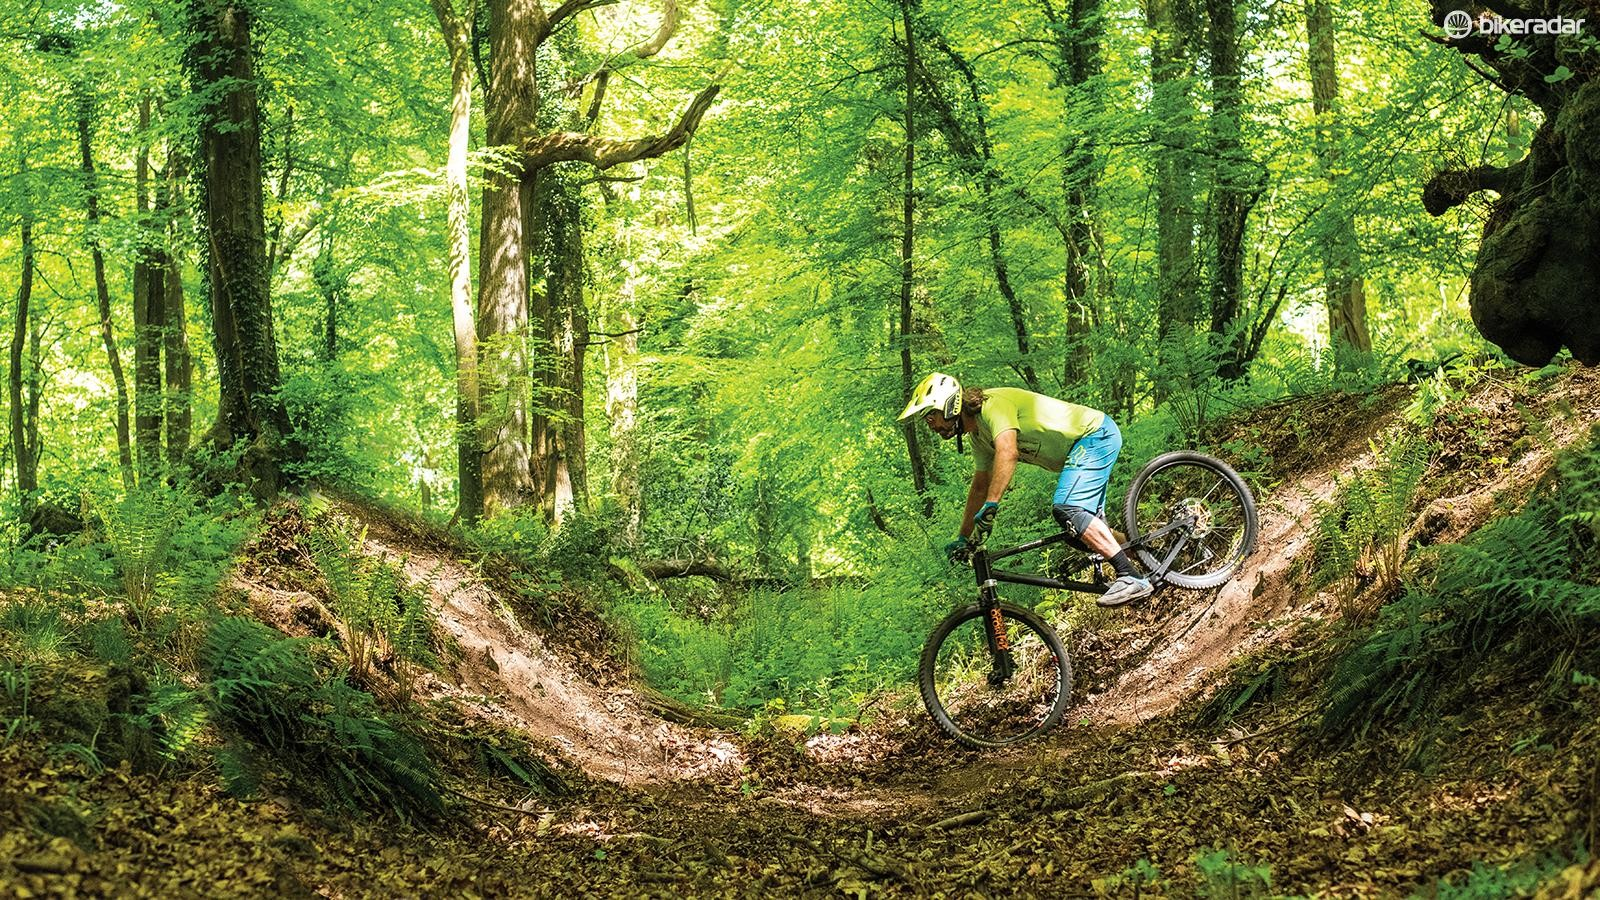 Riding natural bowls is all about getting your speed right